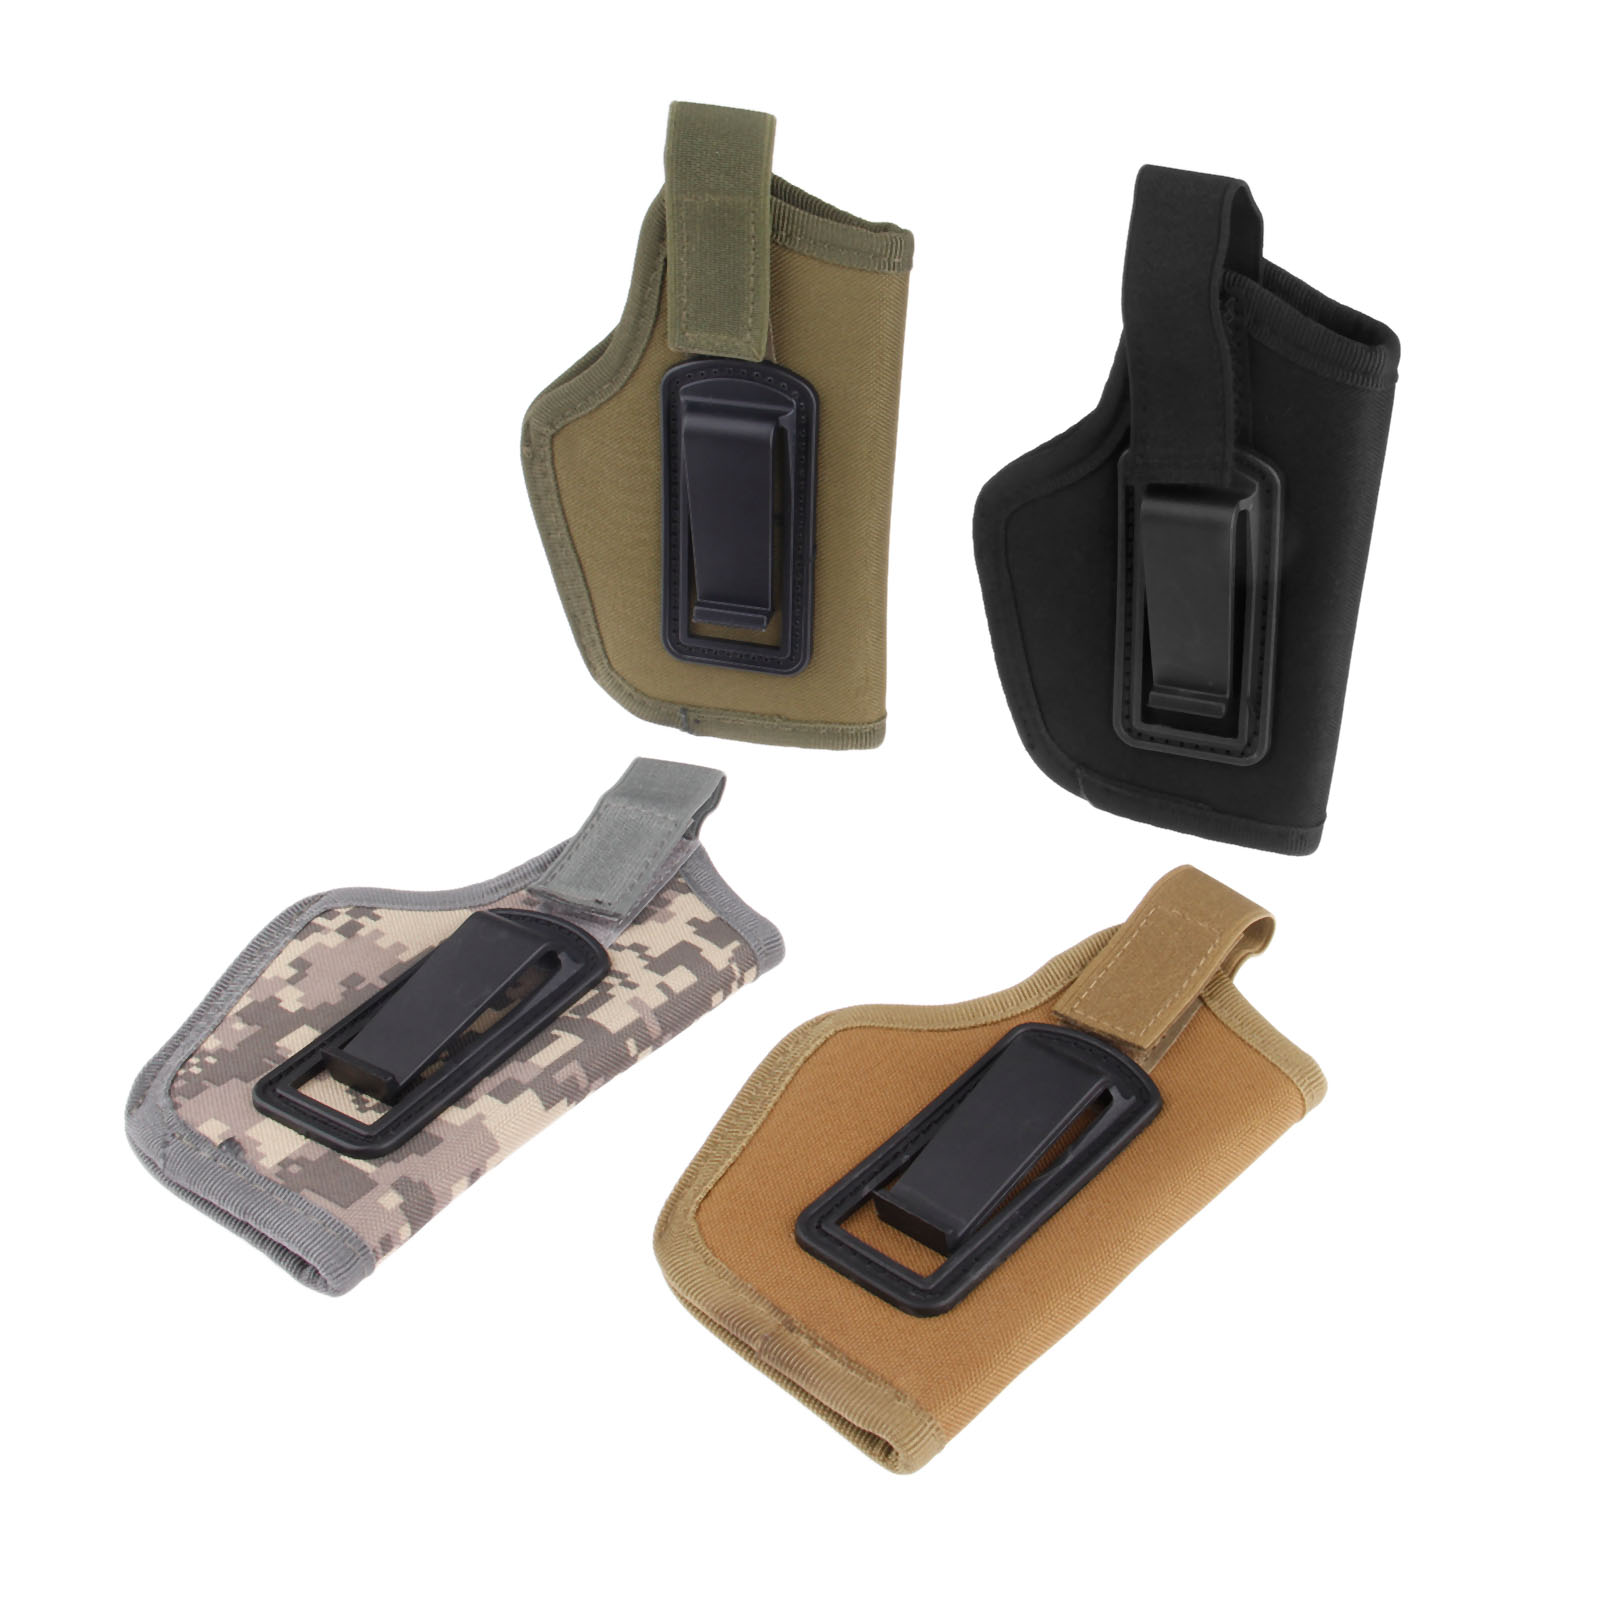 1 Pc Left & Right Hunting Bags Tactical Concealed Carry Gun Pistol Holster Pouch Clip On Belt Fit All Compact/Subcompact Pistols